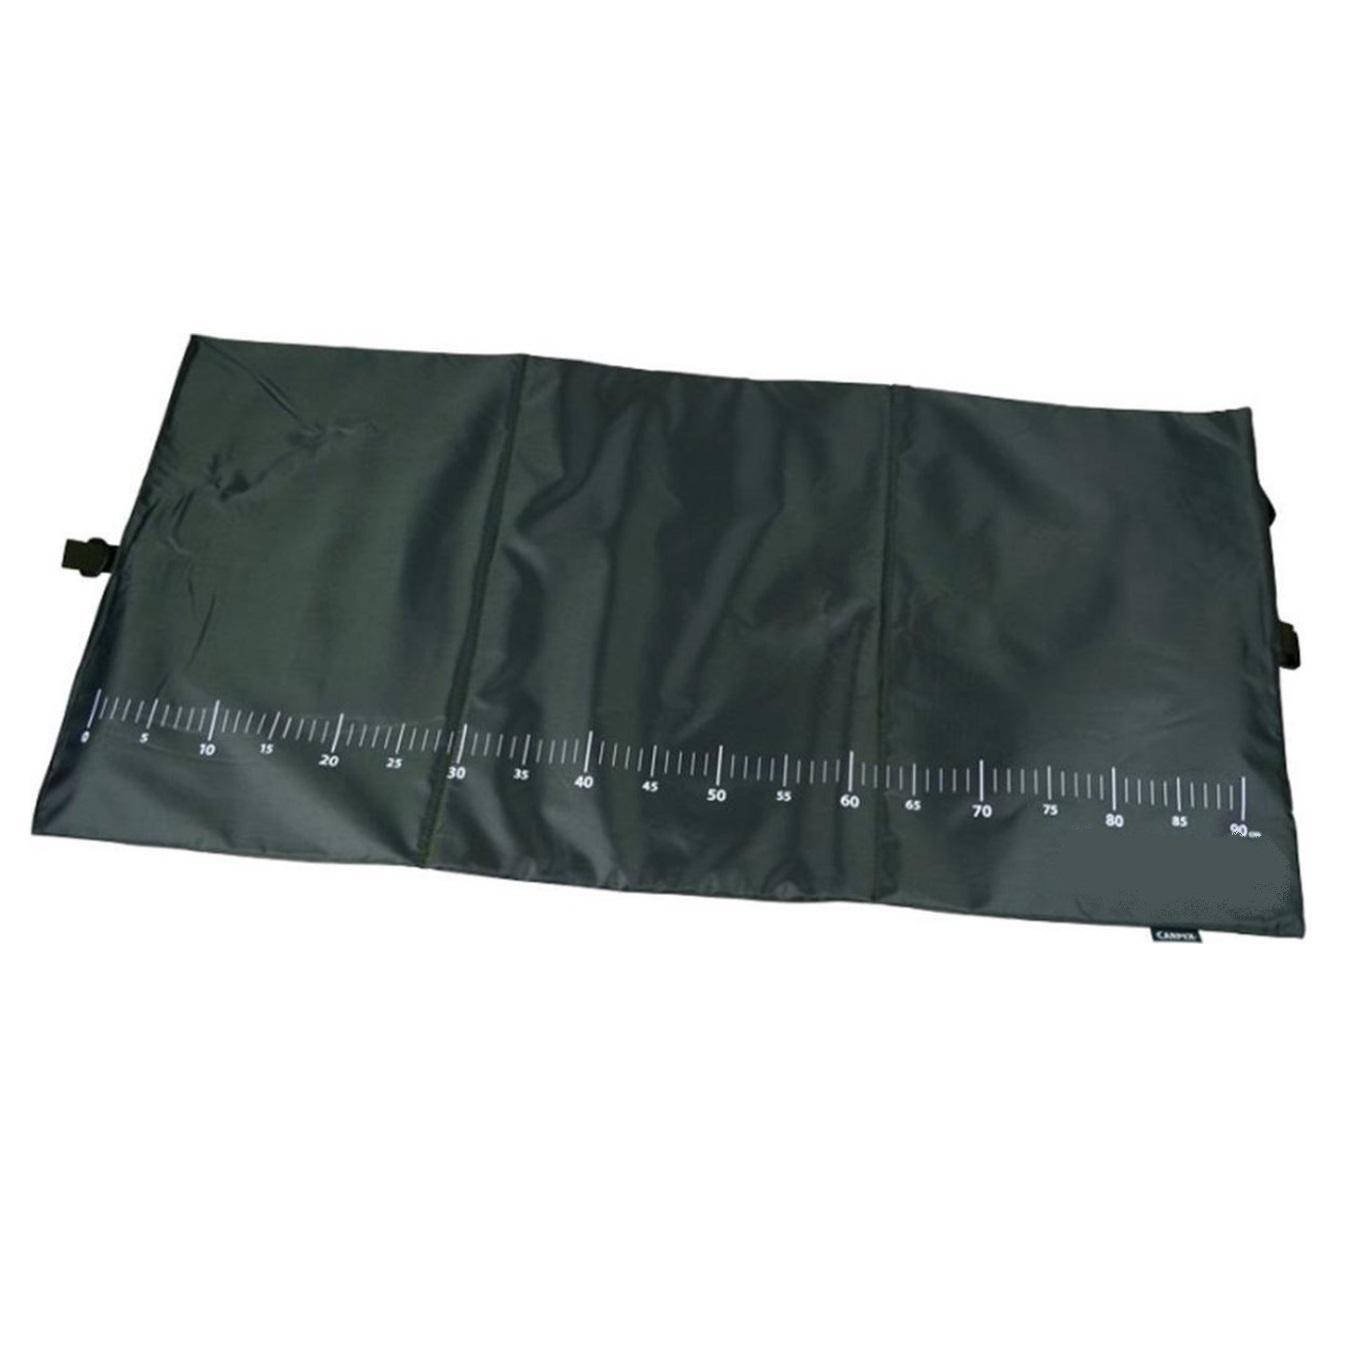 Eco Measuring Onthaakmat